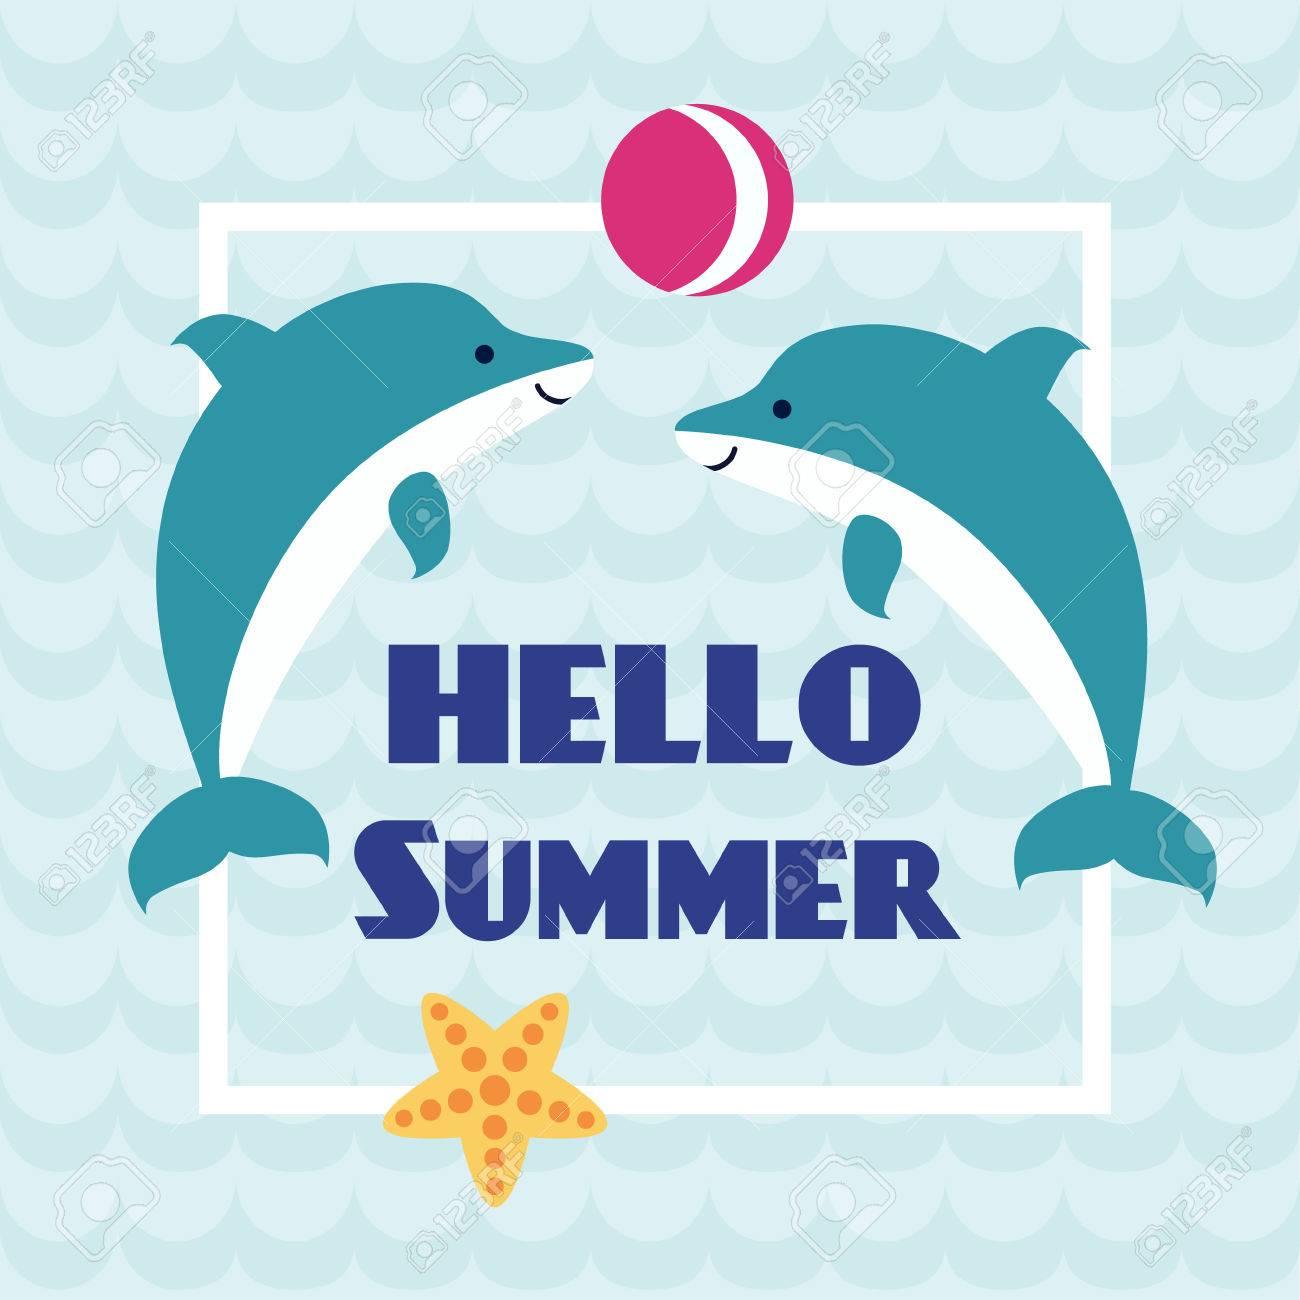 Hello Summer Card With Playing Dolphins And Starfish On Abstract Wave  Background. Design For Invitation